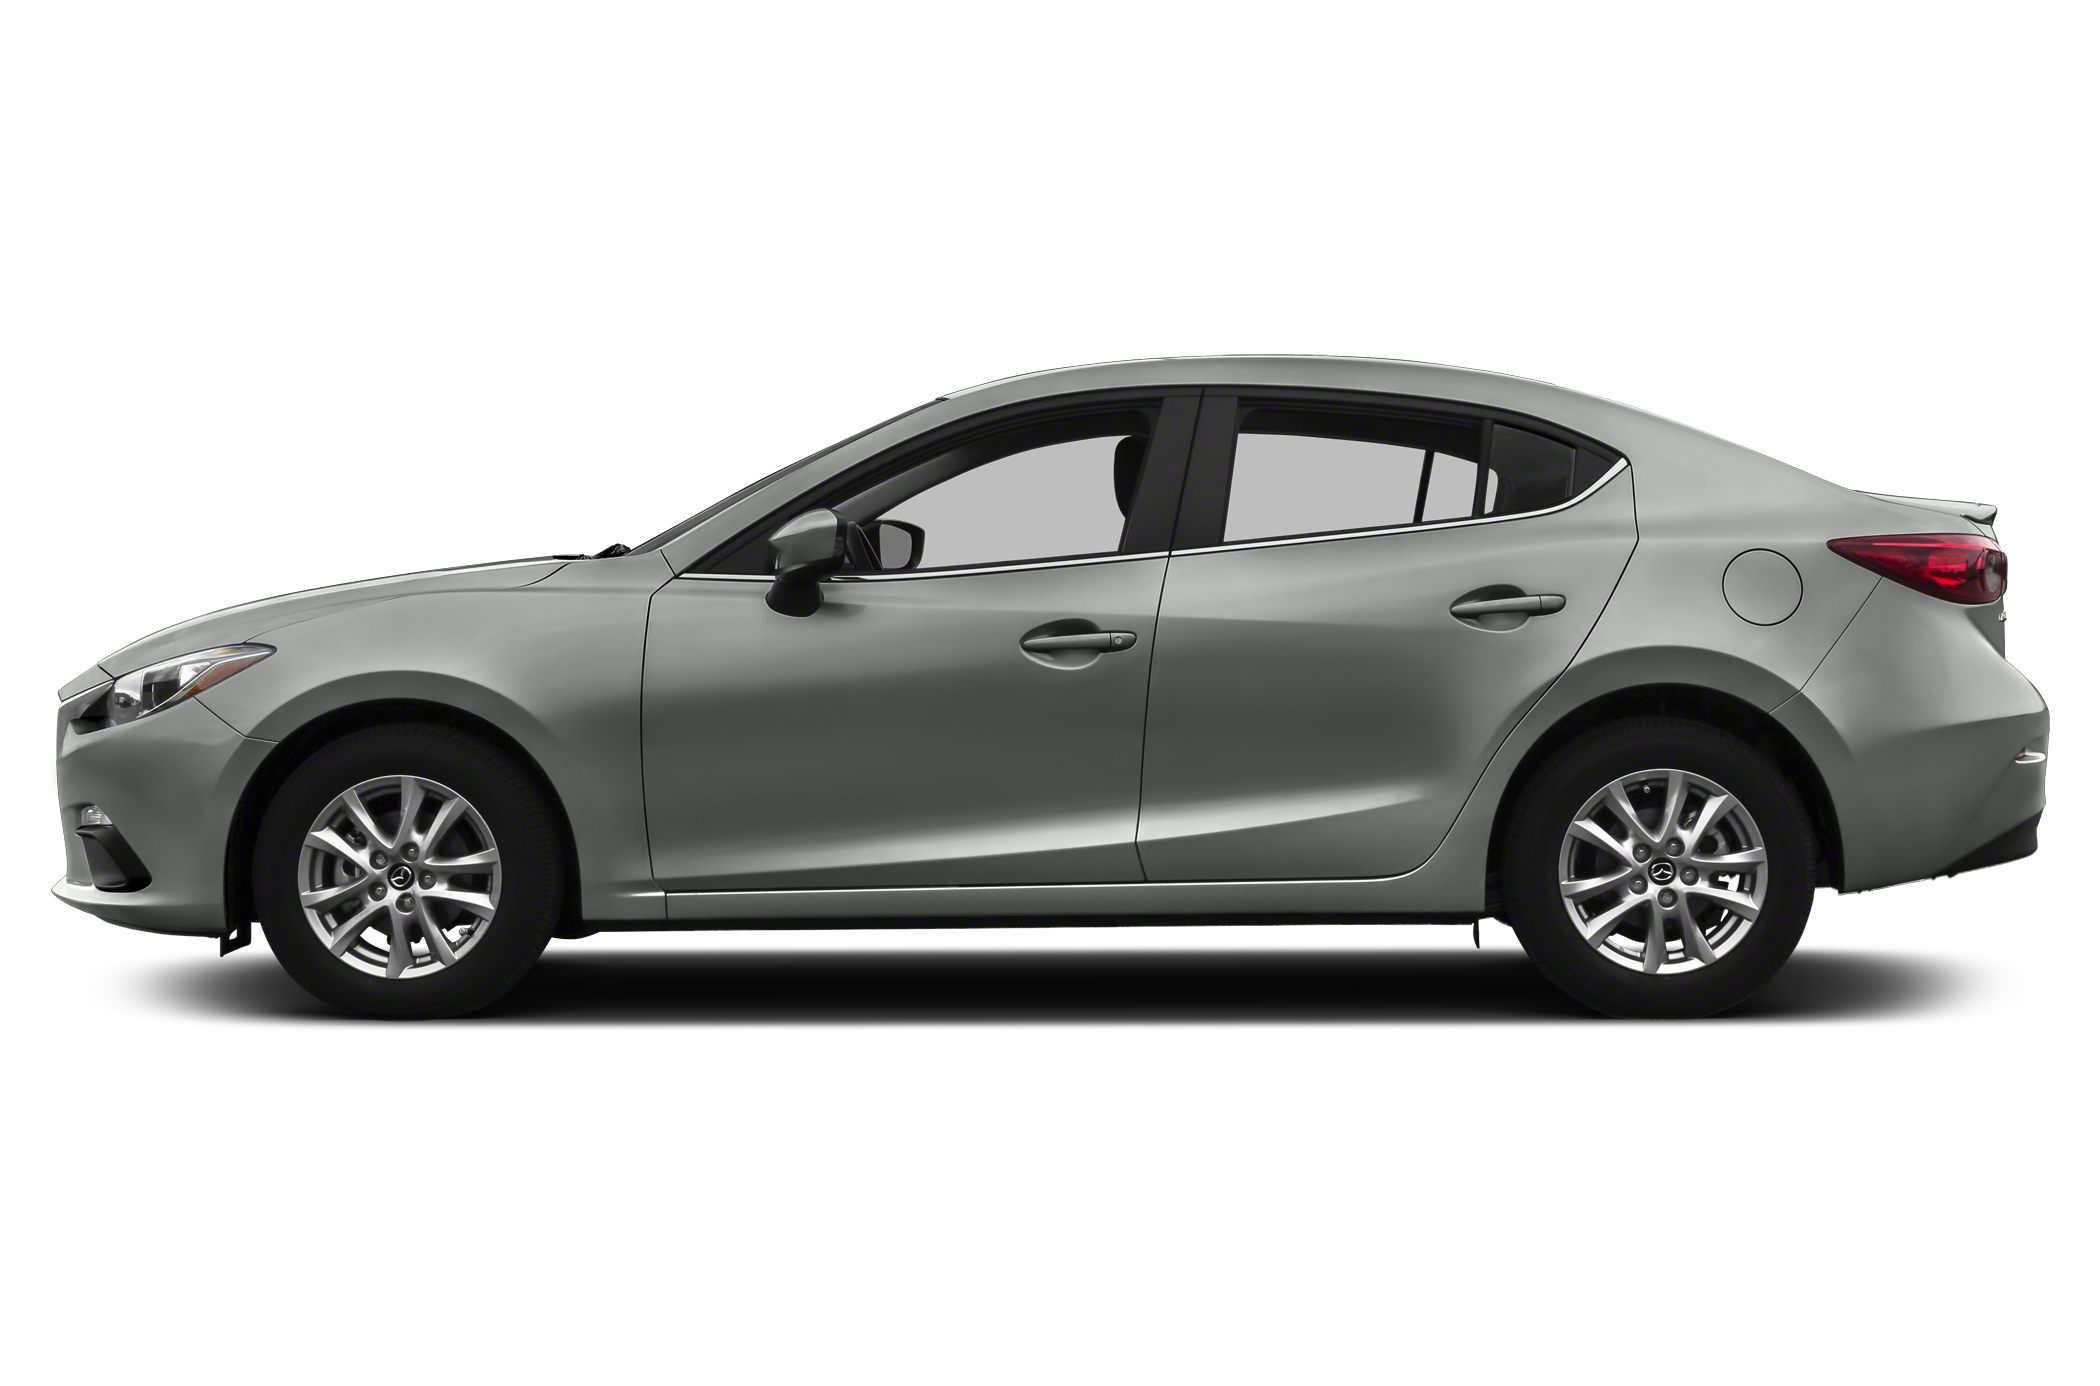 2015 mazda mazda3 i sport cars and vehicles kennewick wa. Black Bedroom Furniture Sets. Home Design Ideas